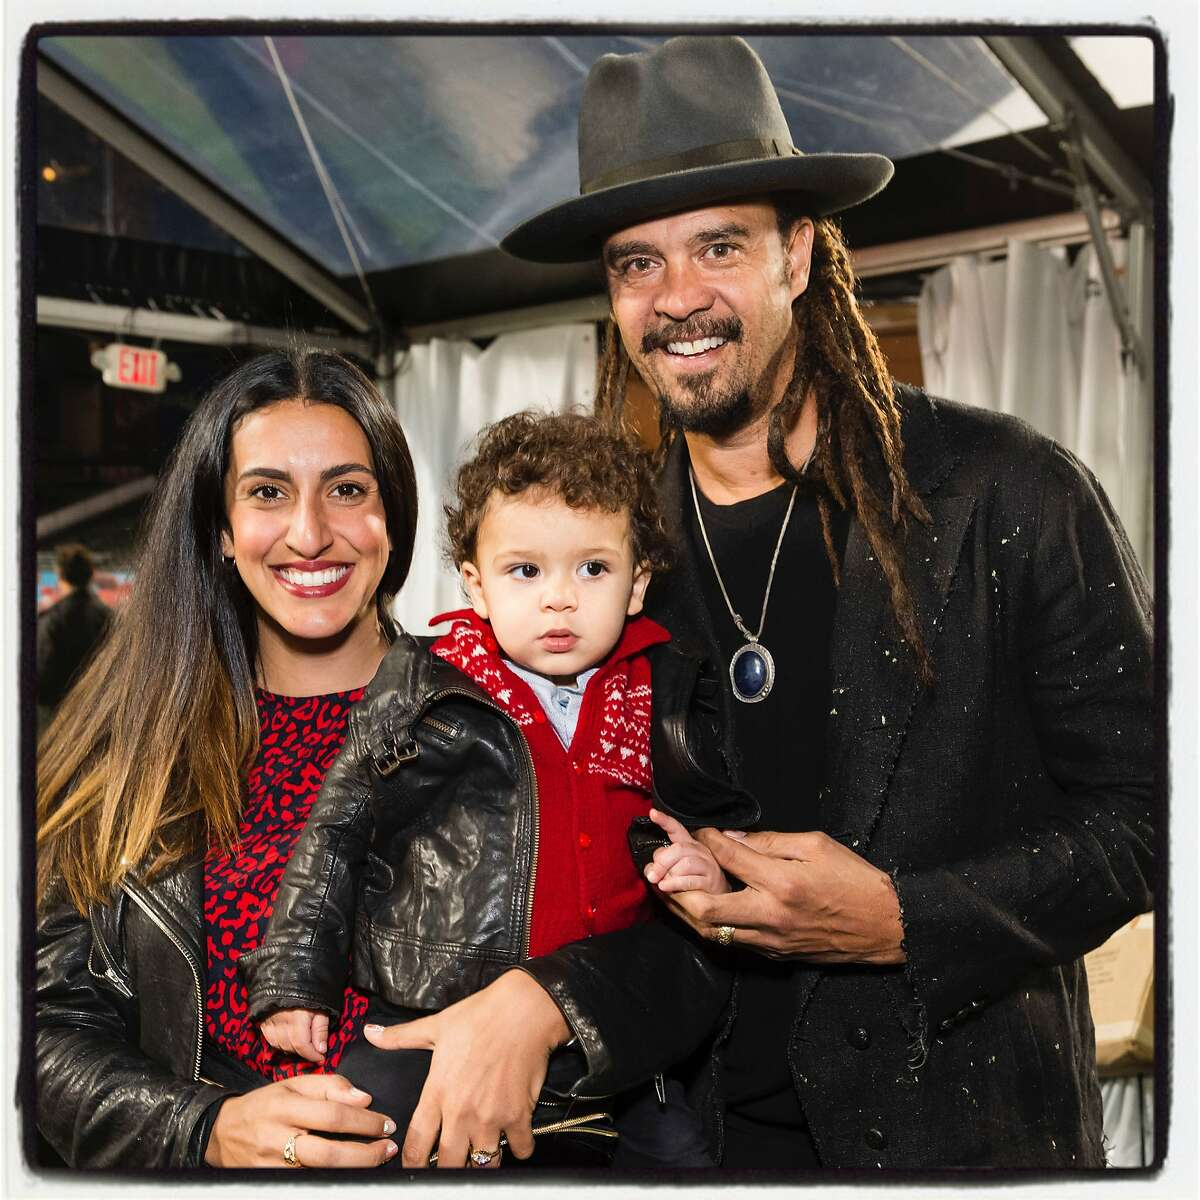 Sara and Michael Franti were honored during Holiday Heroes at Oracle Park. Dec. 10, 2019.